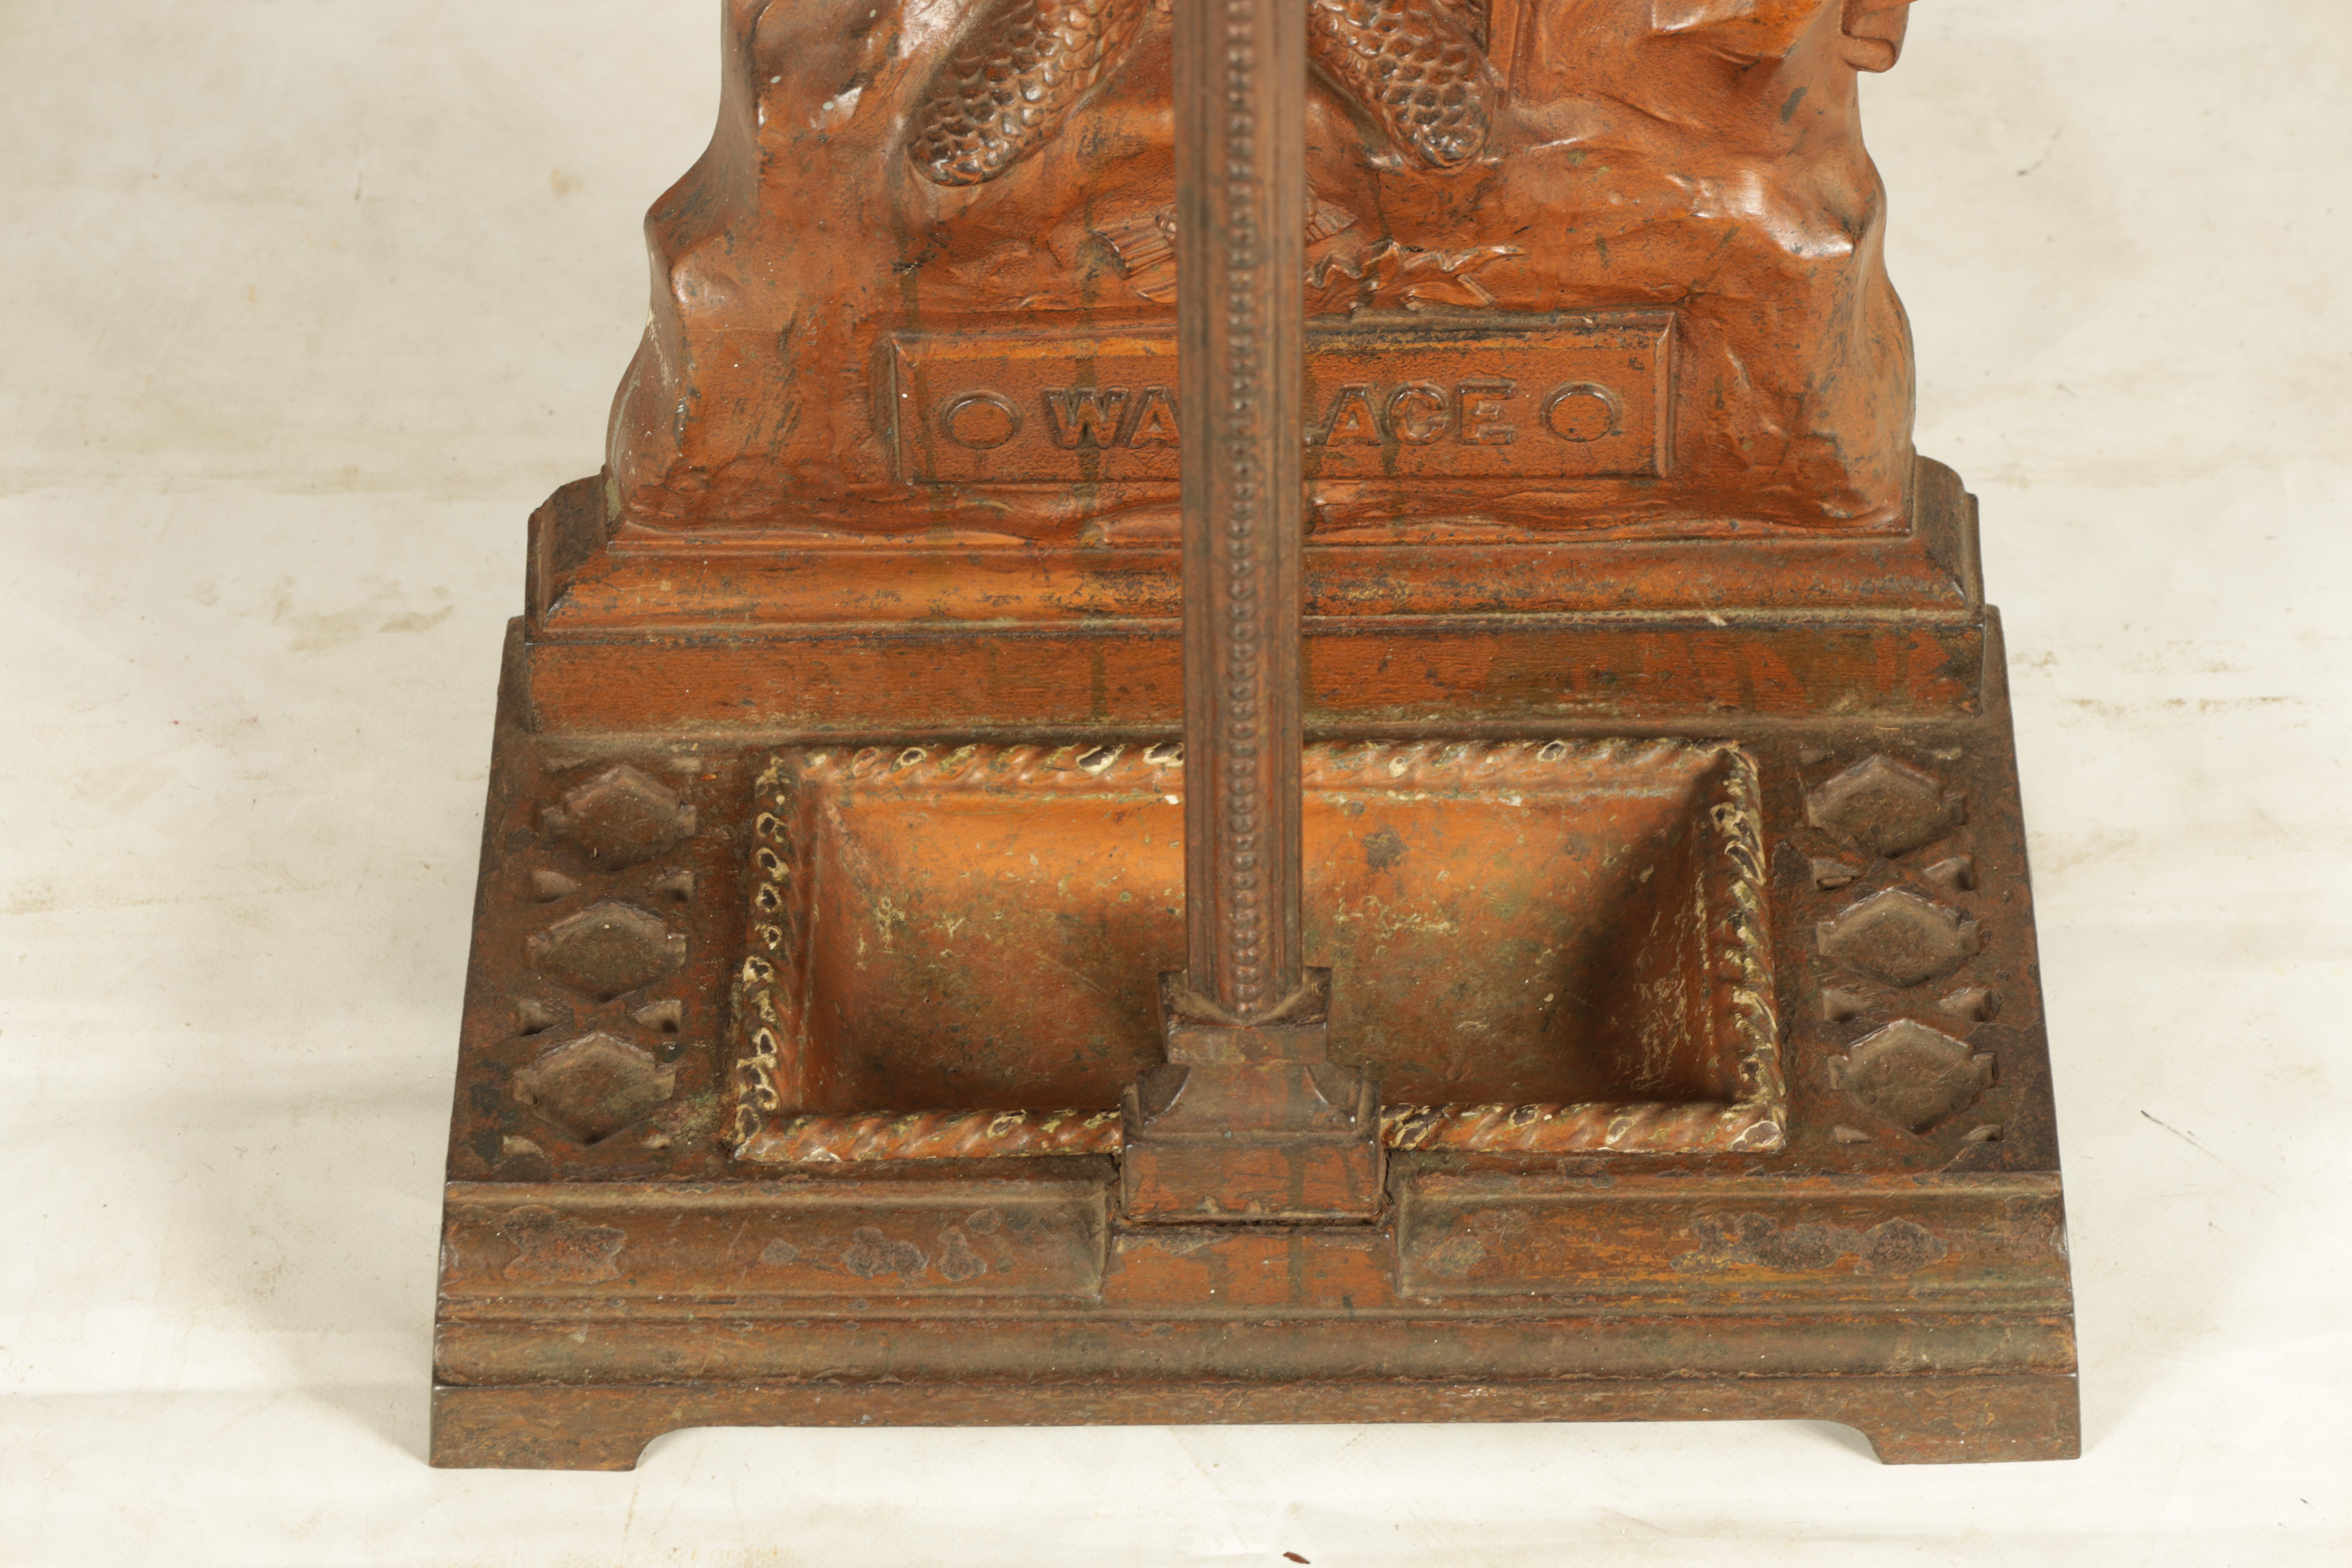 A LATE 19TH CENTURY PAINTED CAST IRON COALBROOKEDALE STYLE STICK STAND DEPICTING WILLIAM WALLACE - Image 3 of 5